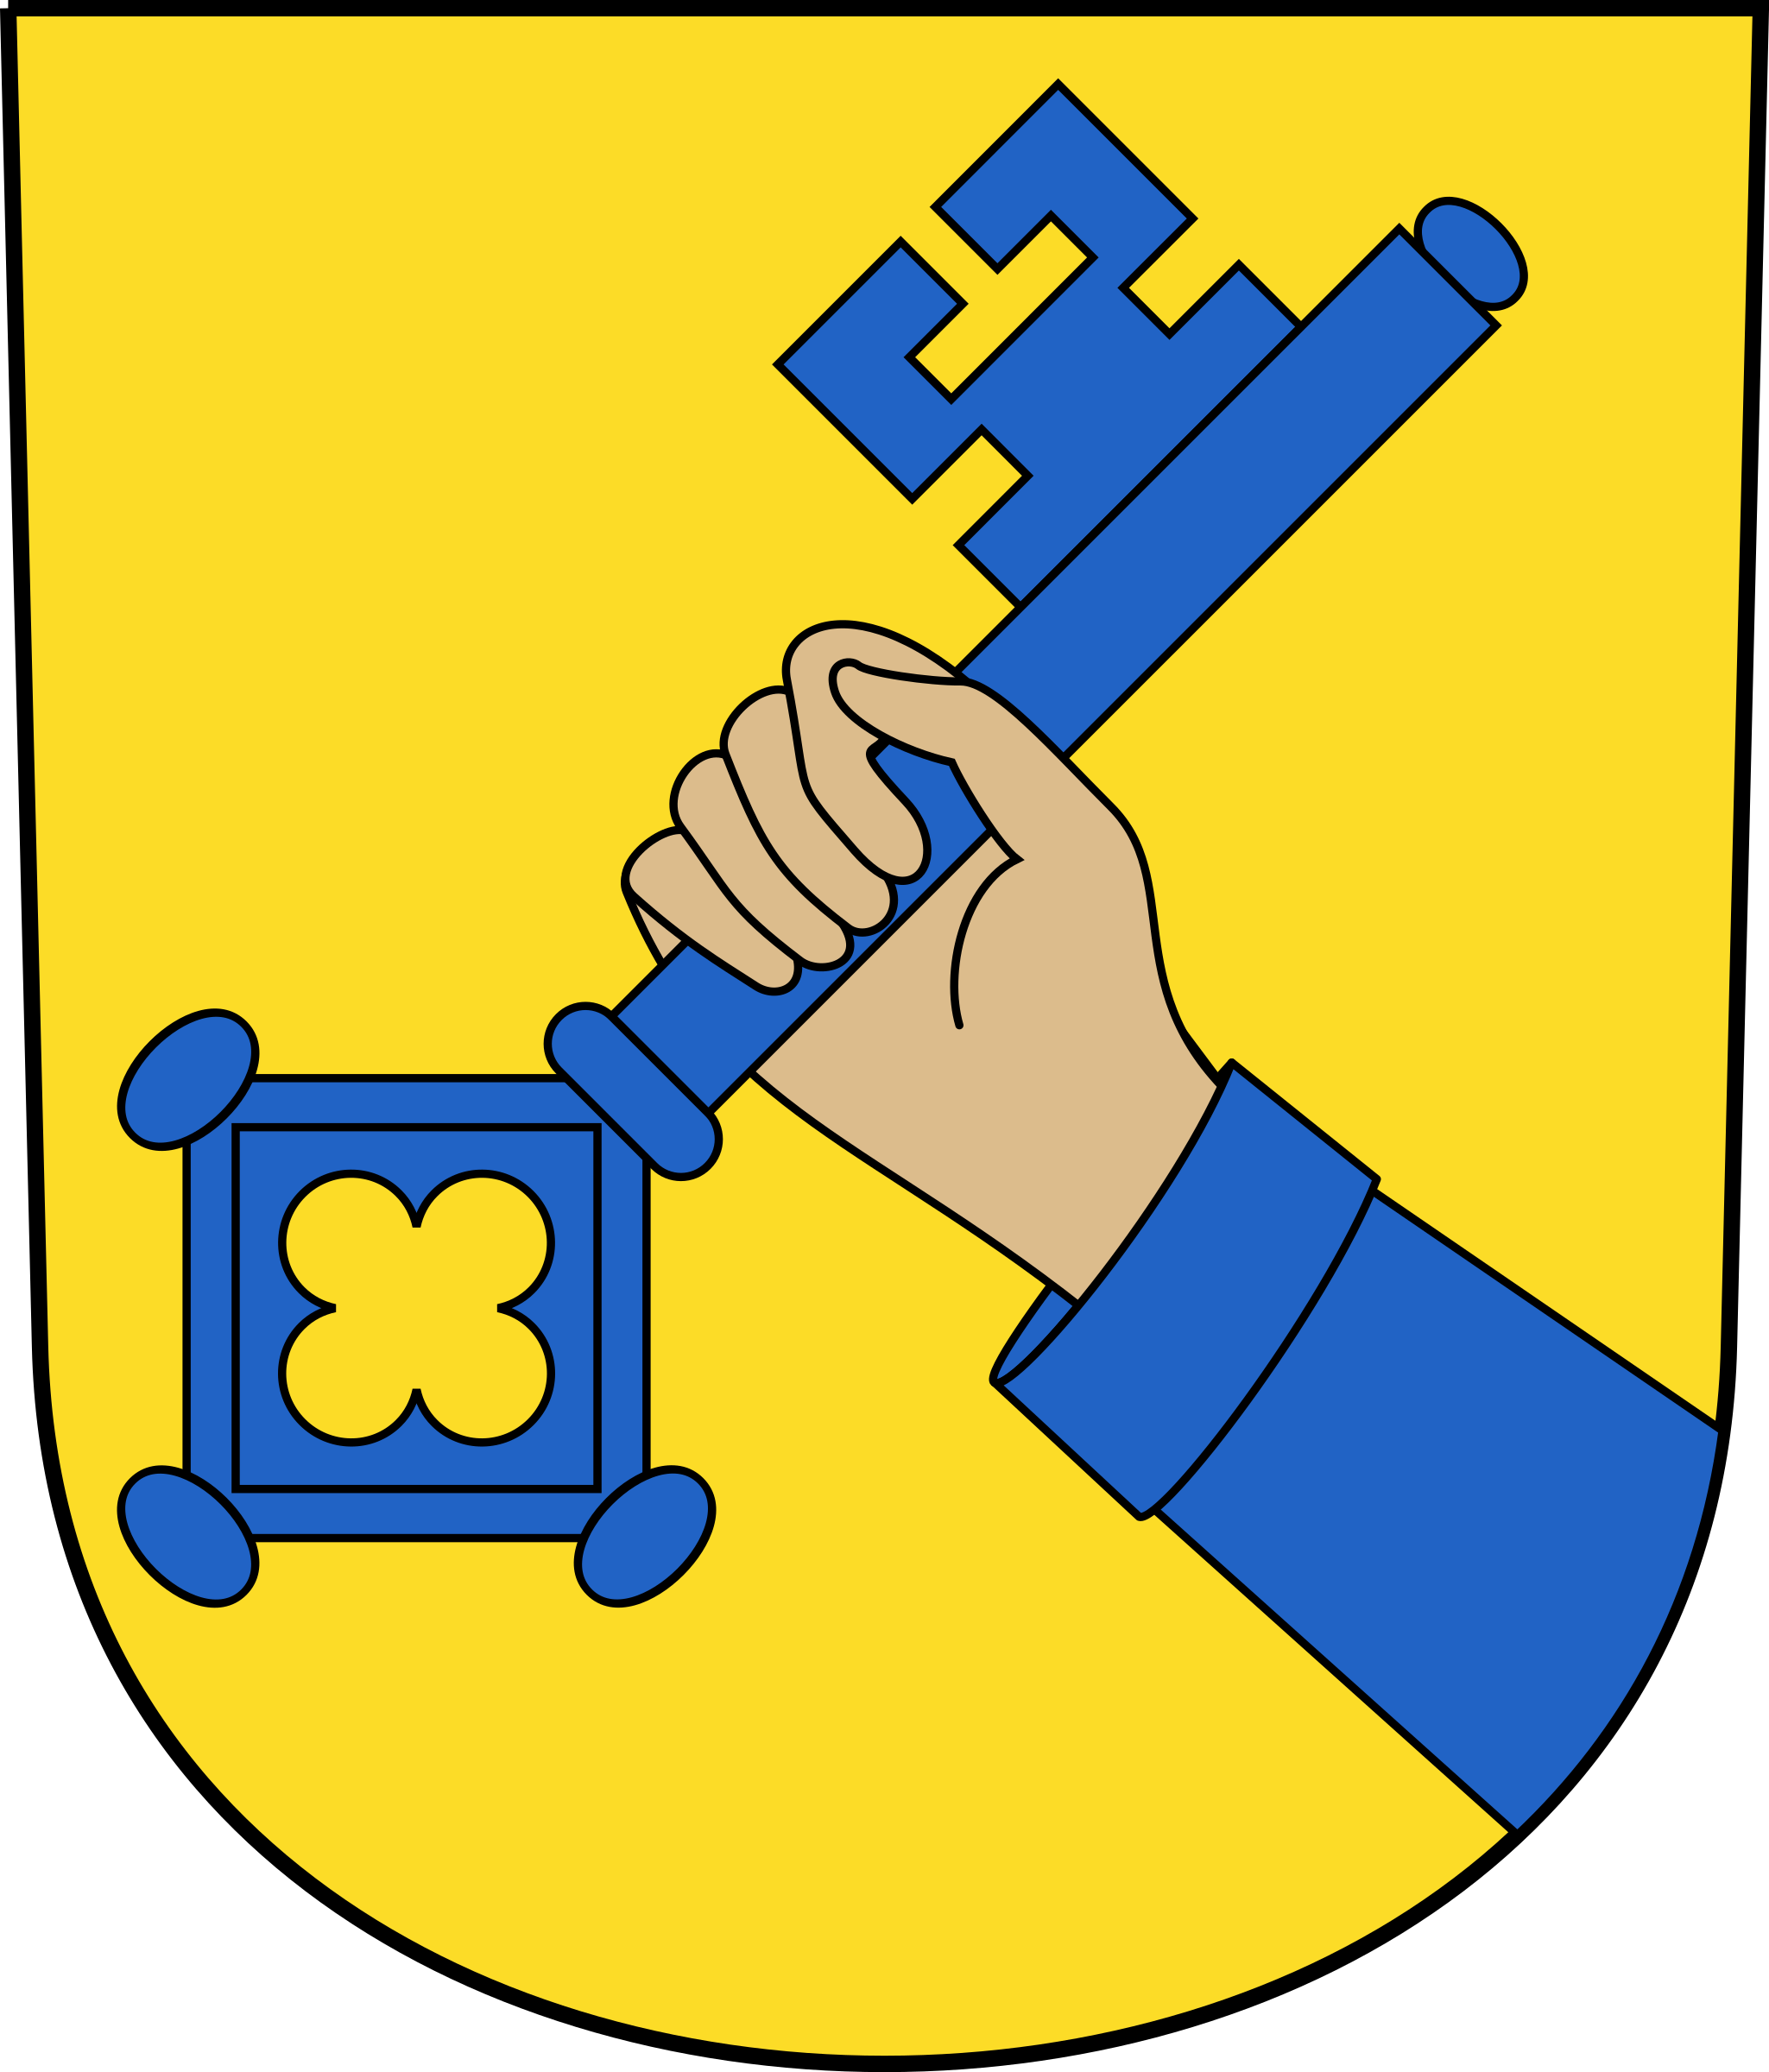 Wallisellen - Coat of arms by wipp